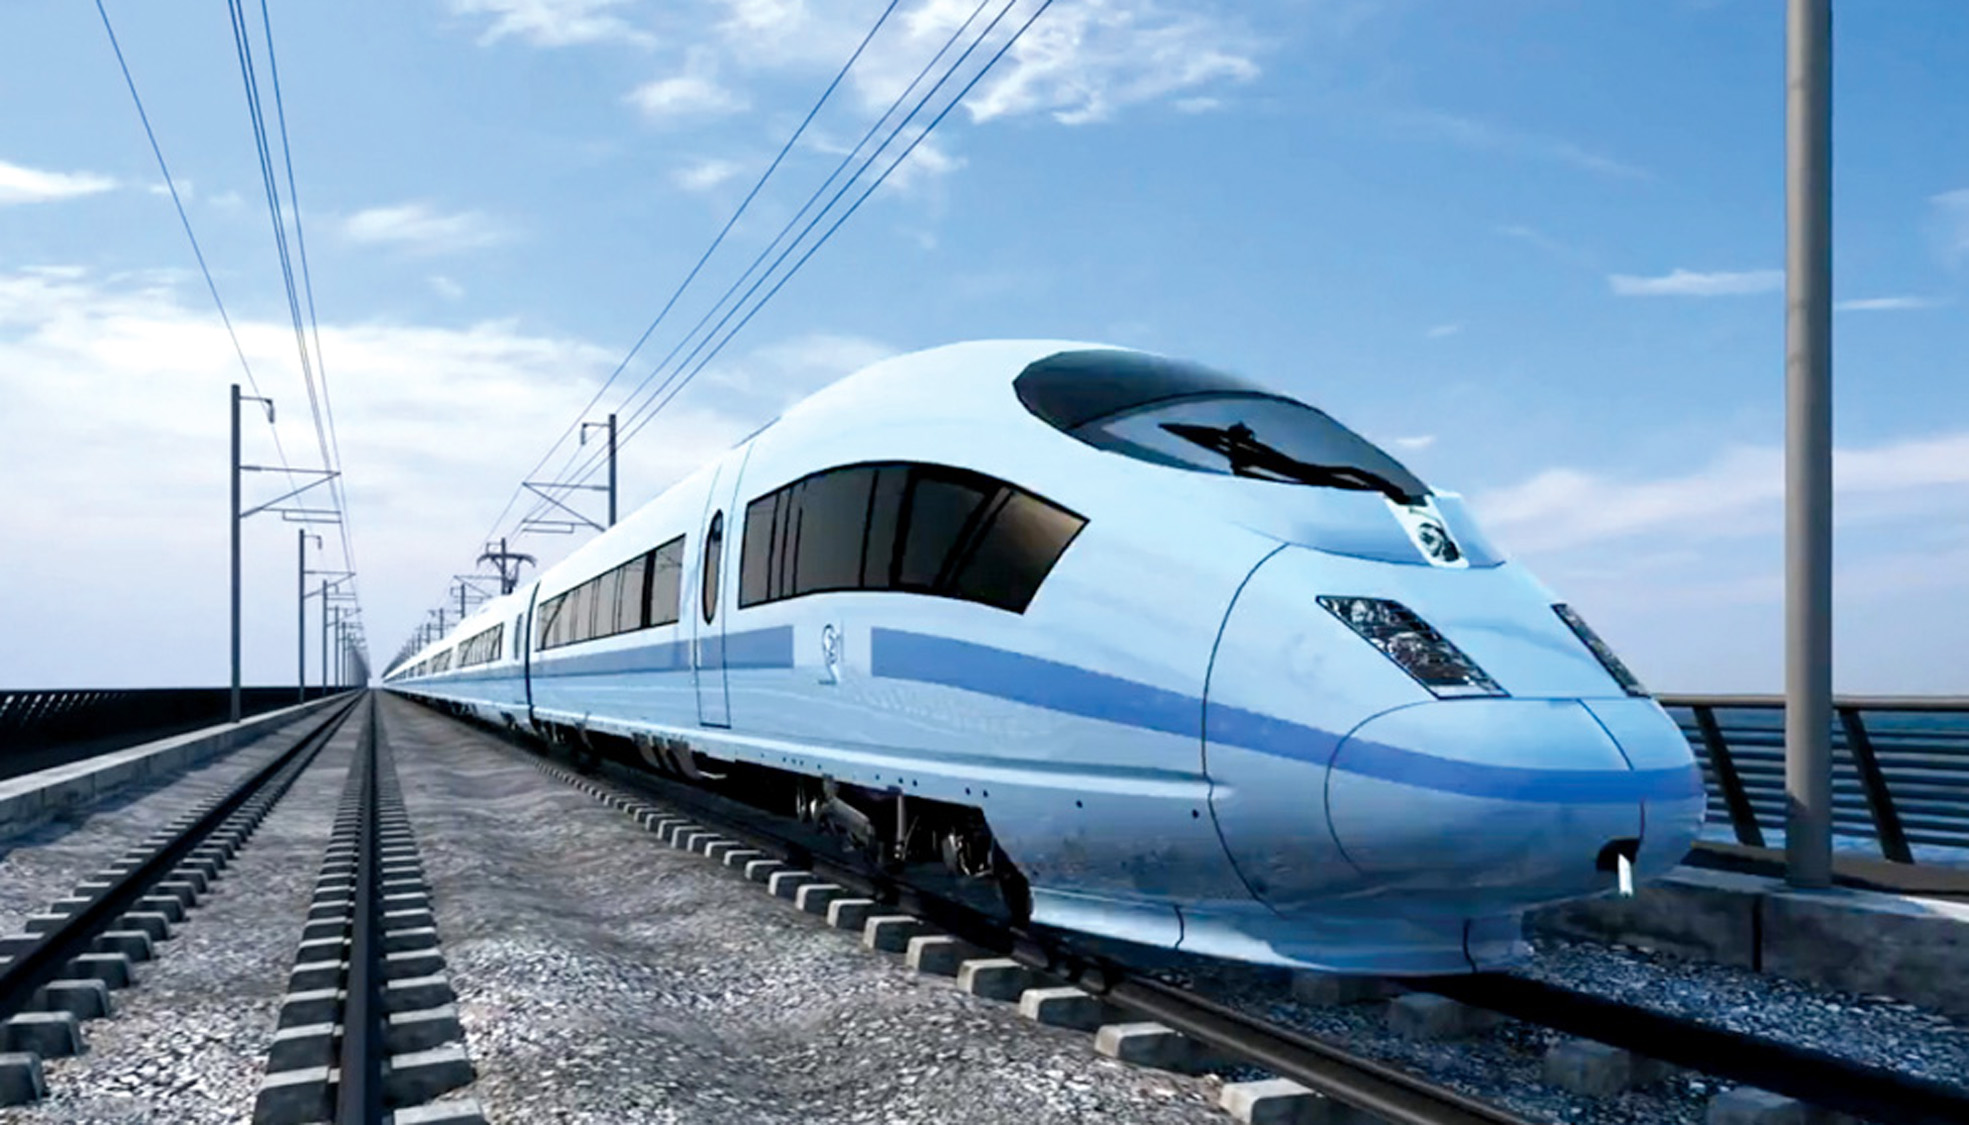 IMPRESSION What the proposed high-speed rail link HS2 would look like